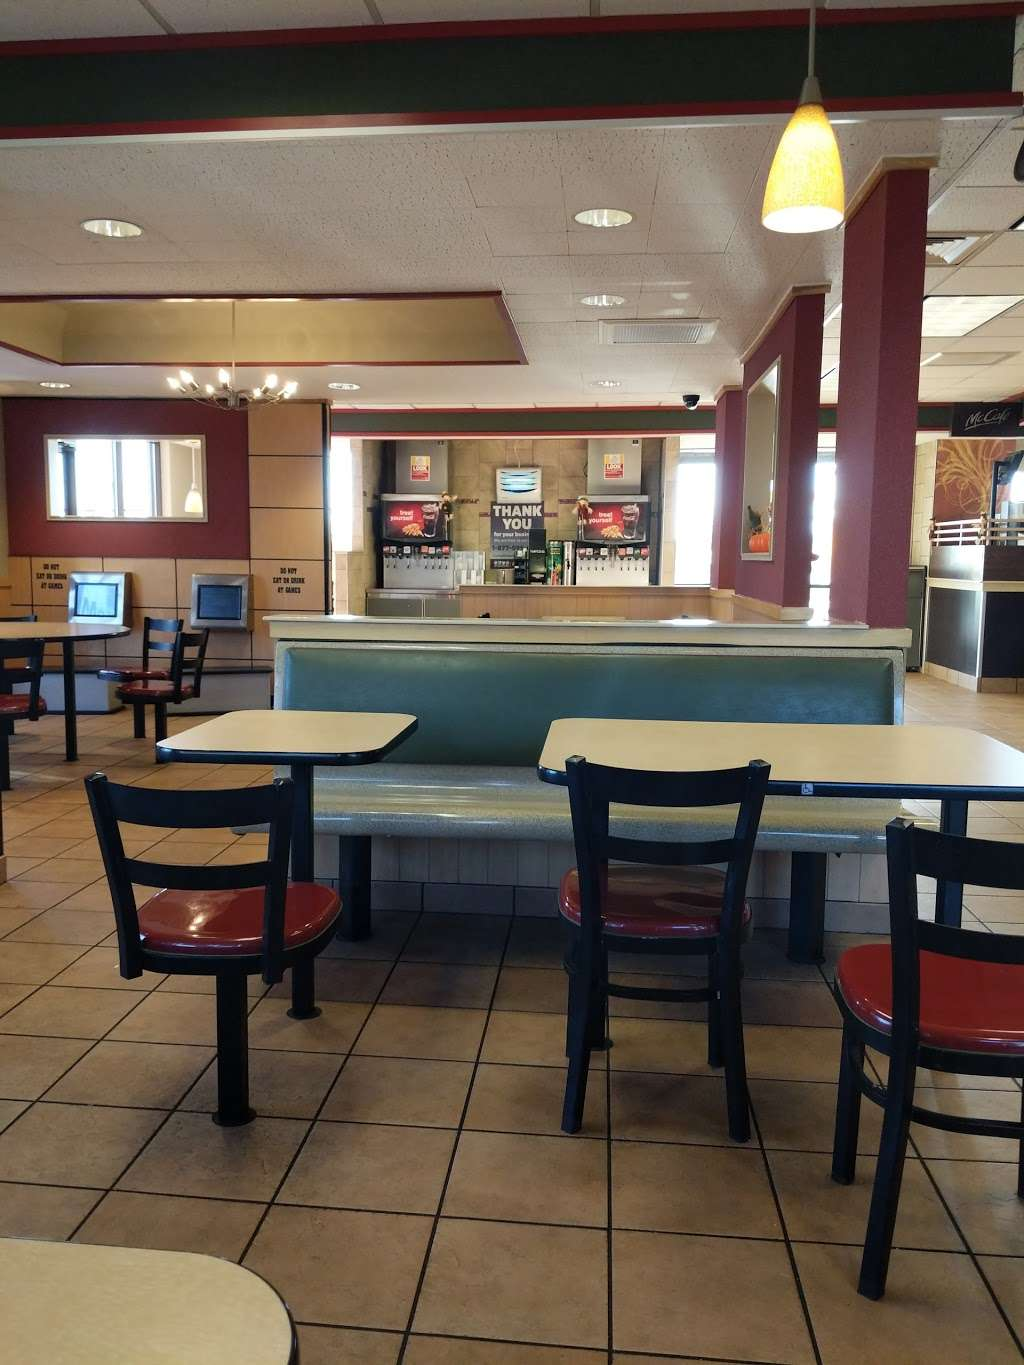 McDonalds - cafe  | Photo 2 of 10 | Address: 2891 Philadelphia Ave, Chambersburg, PA 17201, USA | Phone: (717) 263-2970